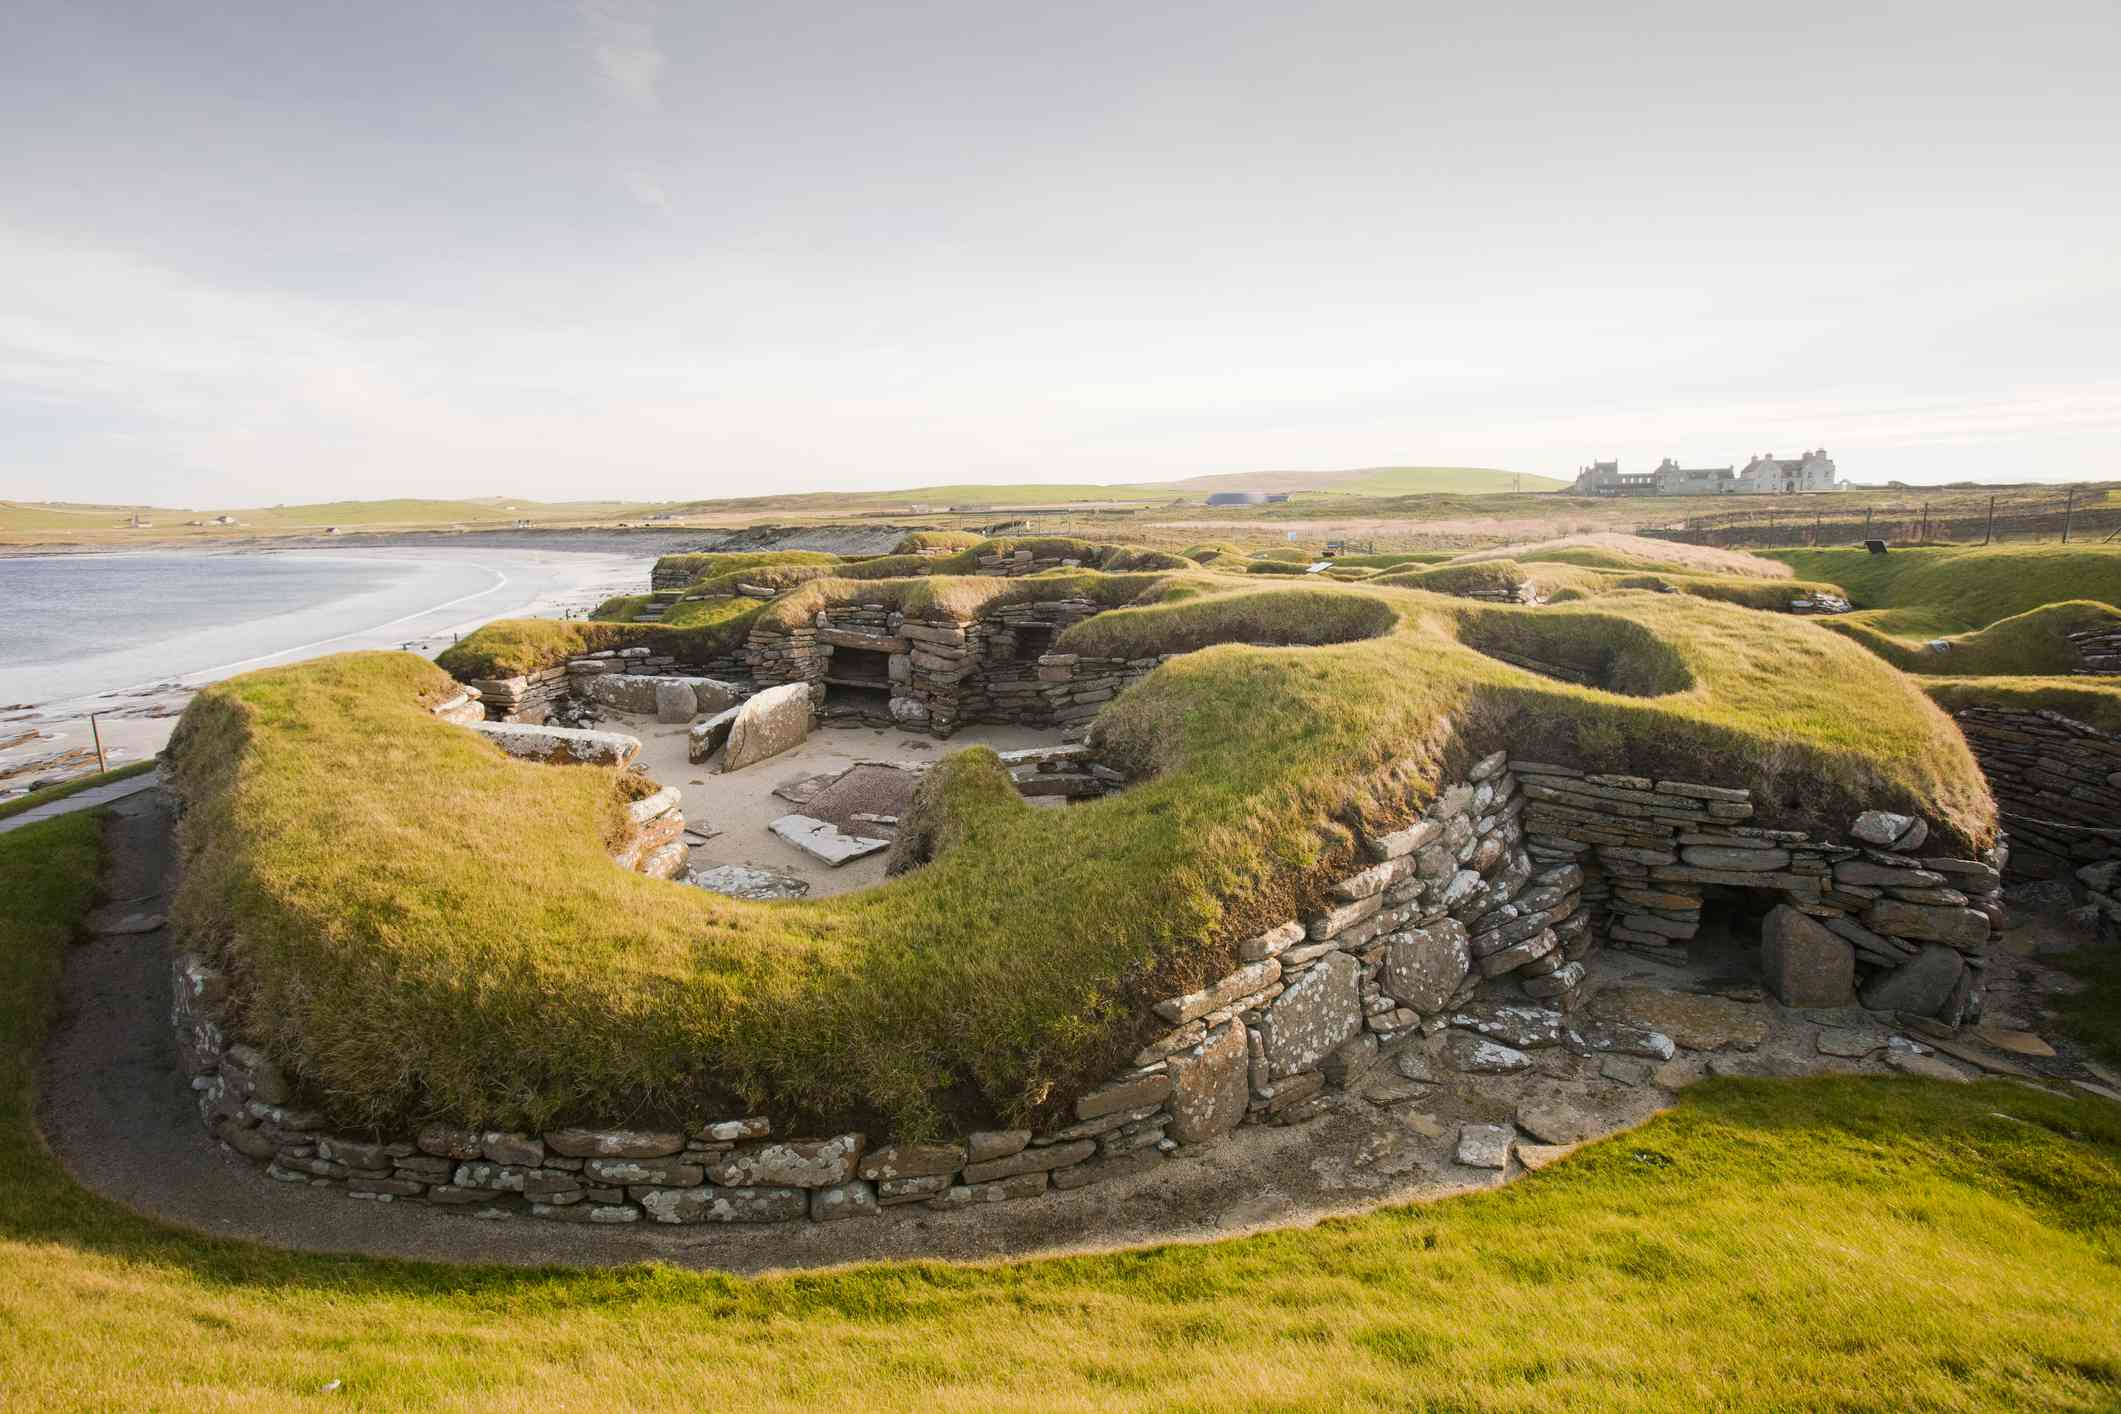 Grass-covered stone settlement on the coast of Scotland